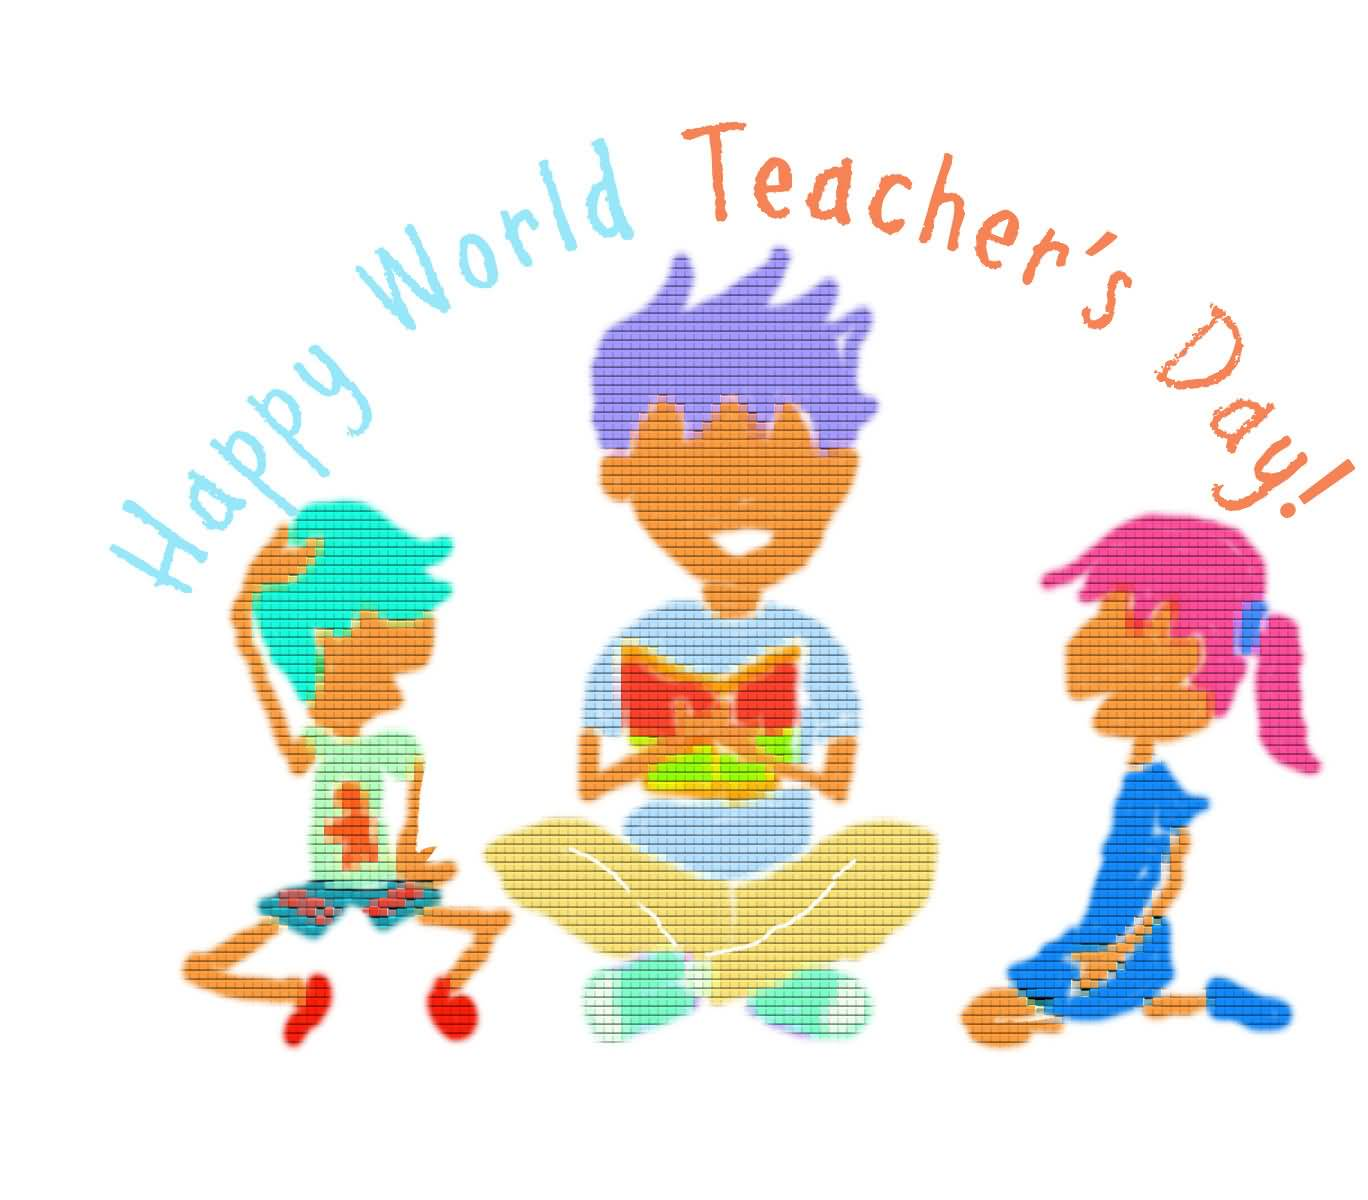 1368x1200 Best World Teachers Day Wish Pictures And Photos